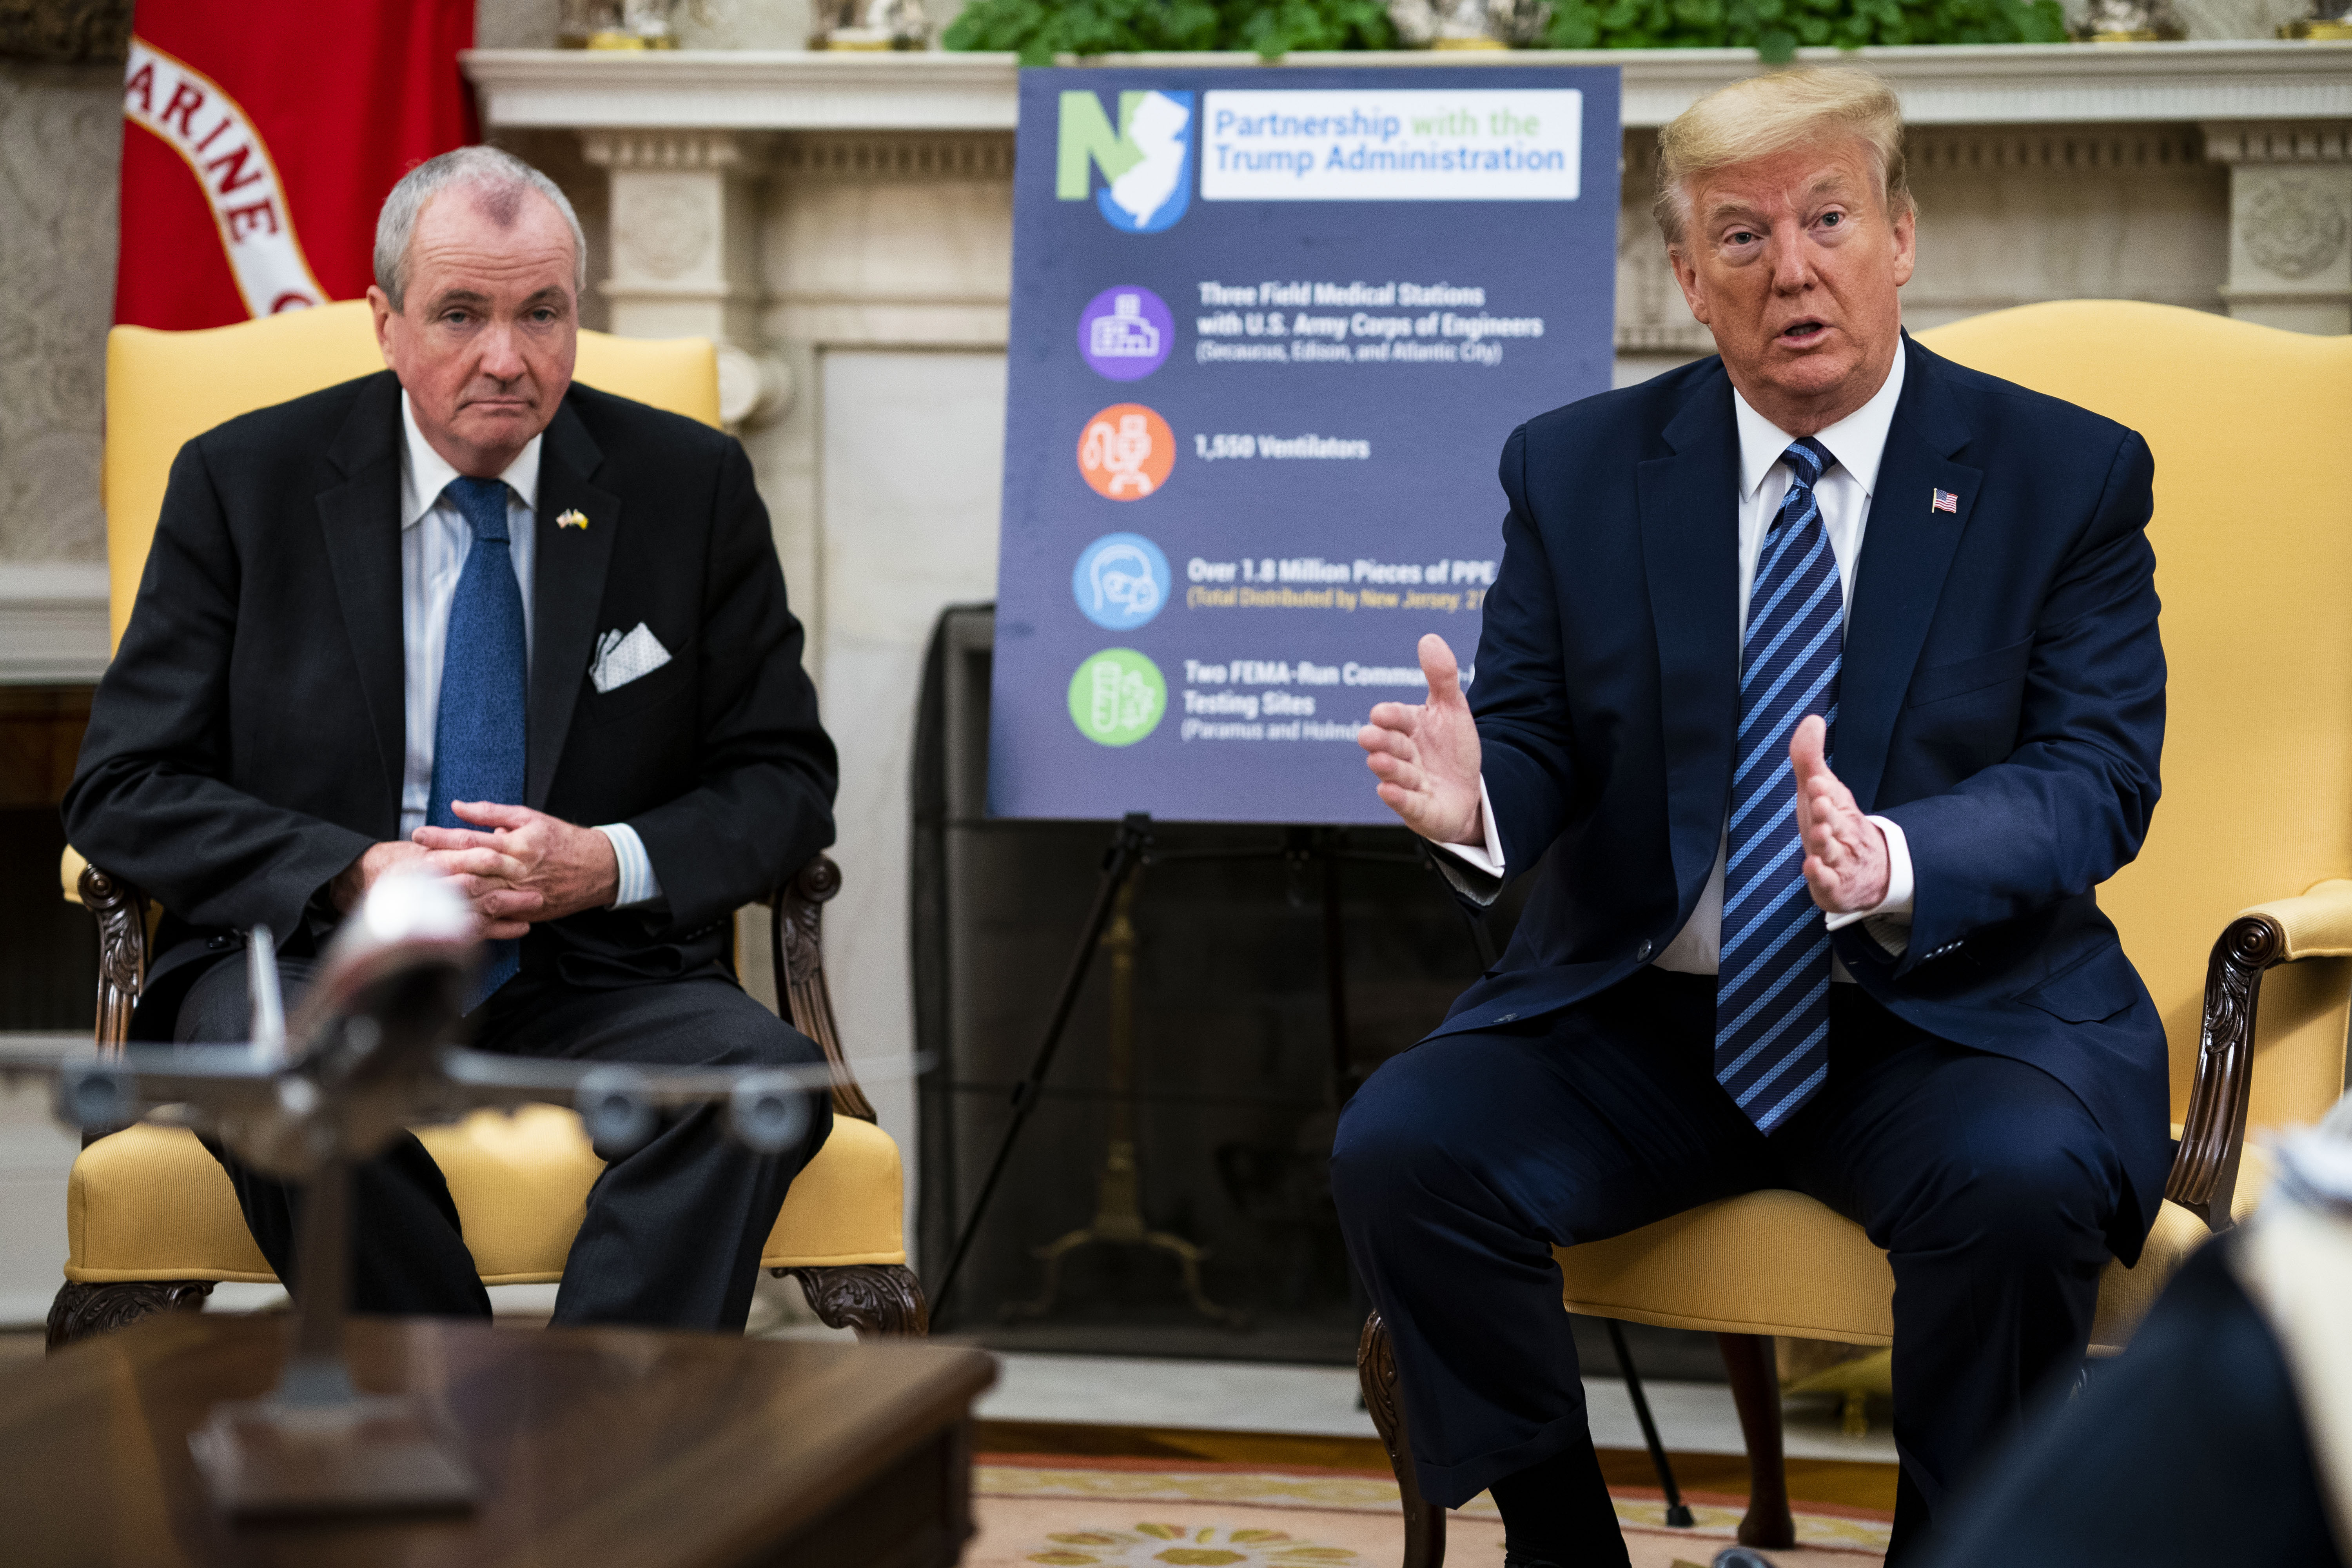 U.S. President Donald Trump meets with New Jersey Gov. Phil Murphy in the Oval Office of the White House April 30, 2020 in Washington, DC. (Photo: Doug Mills/The New York Times/Pool/Getty Images)